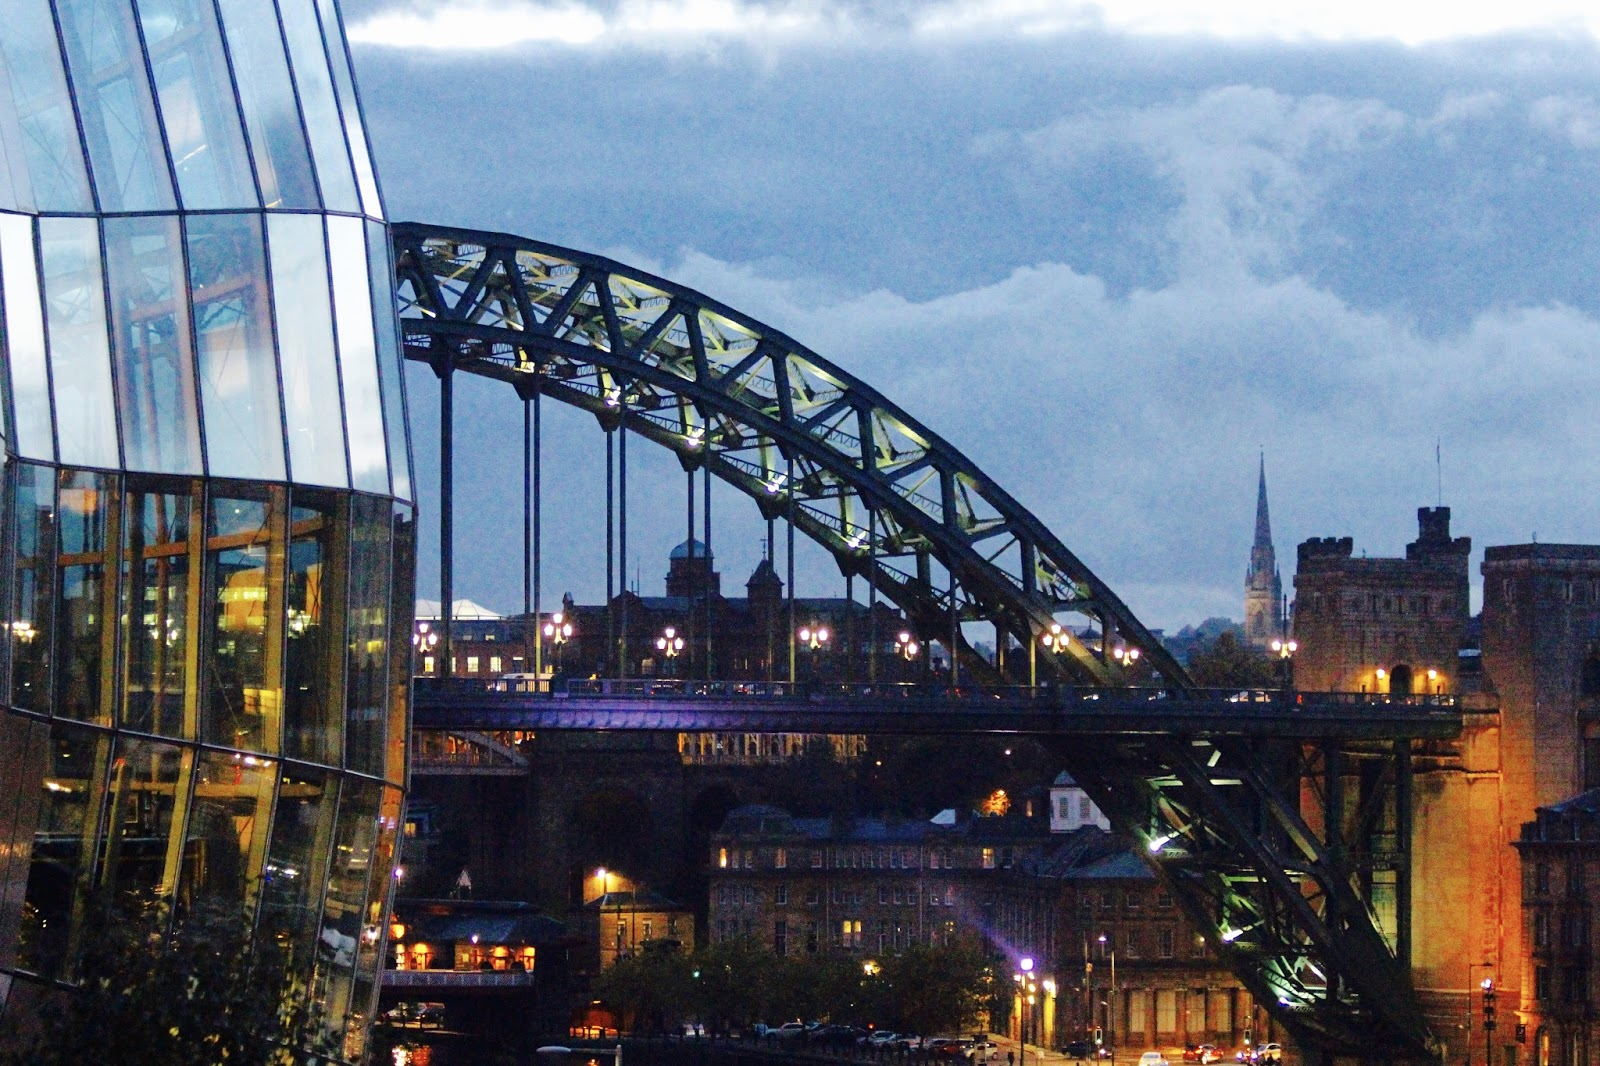 the sage gateshead tyne bridge